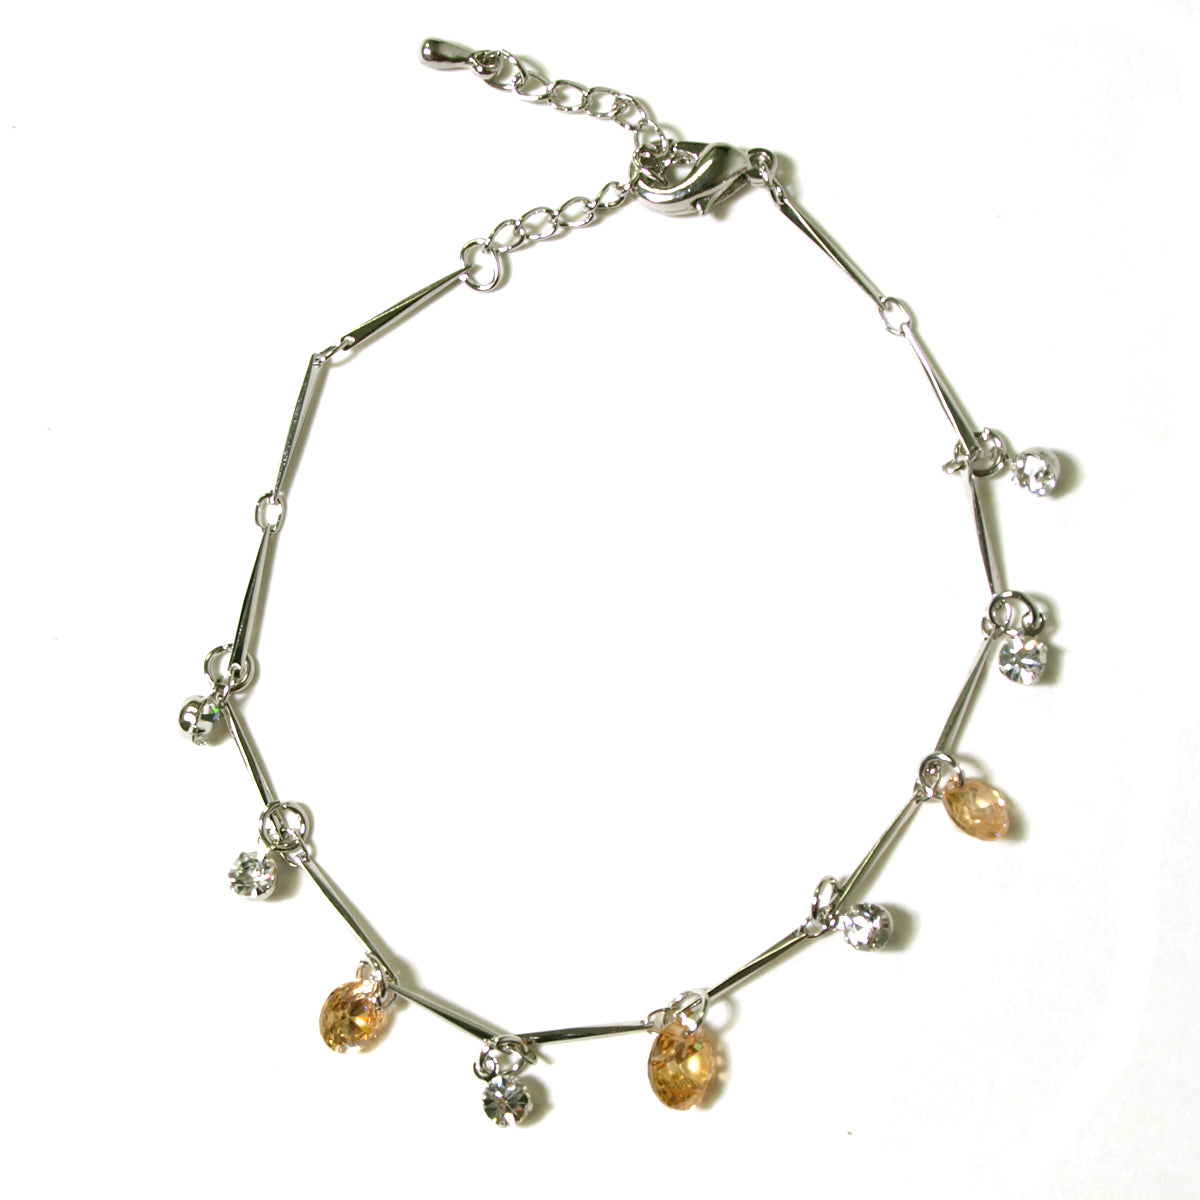 Cubic Zirconia Crystals with Silver Plating Anklet